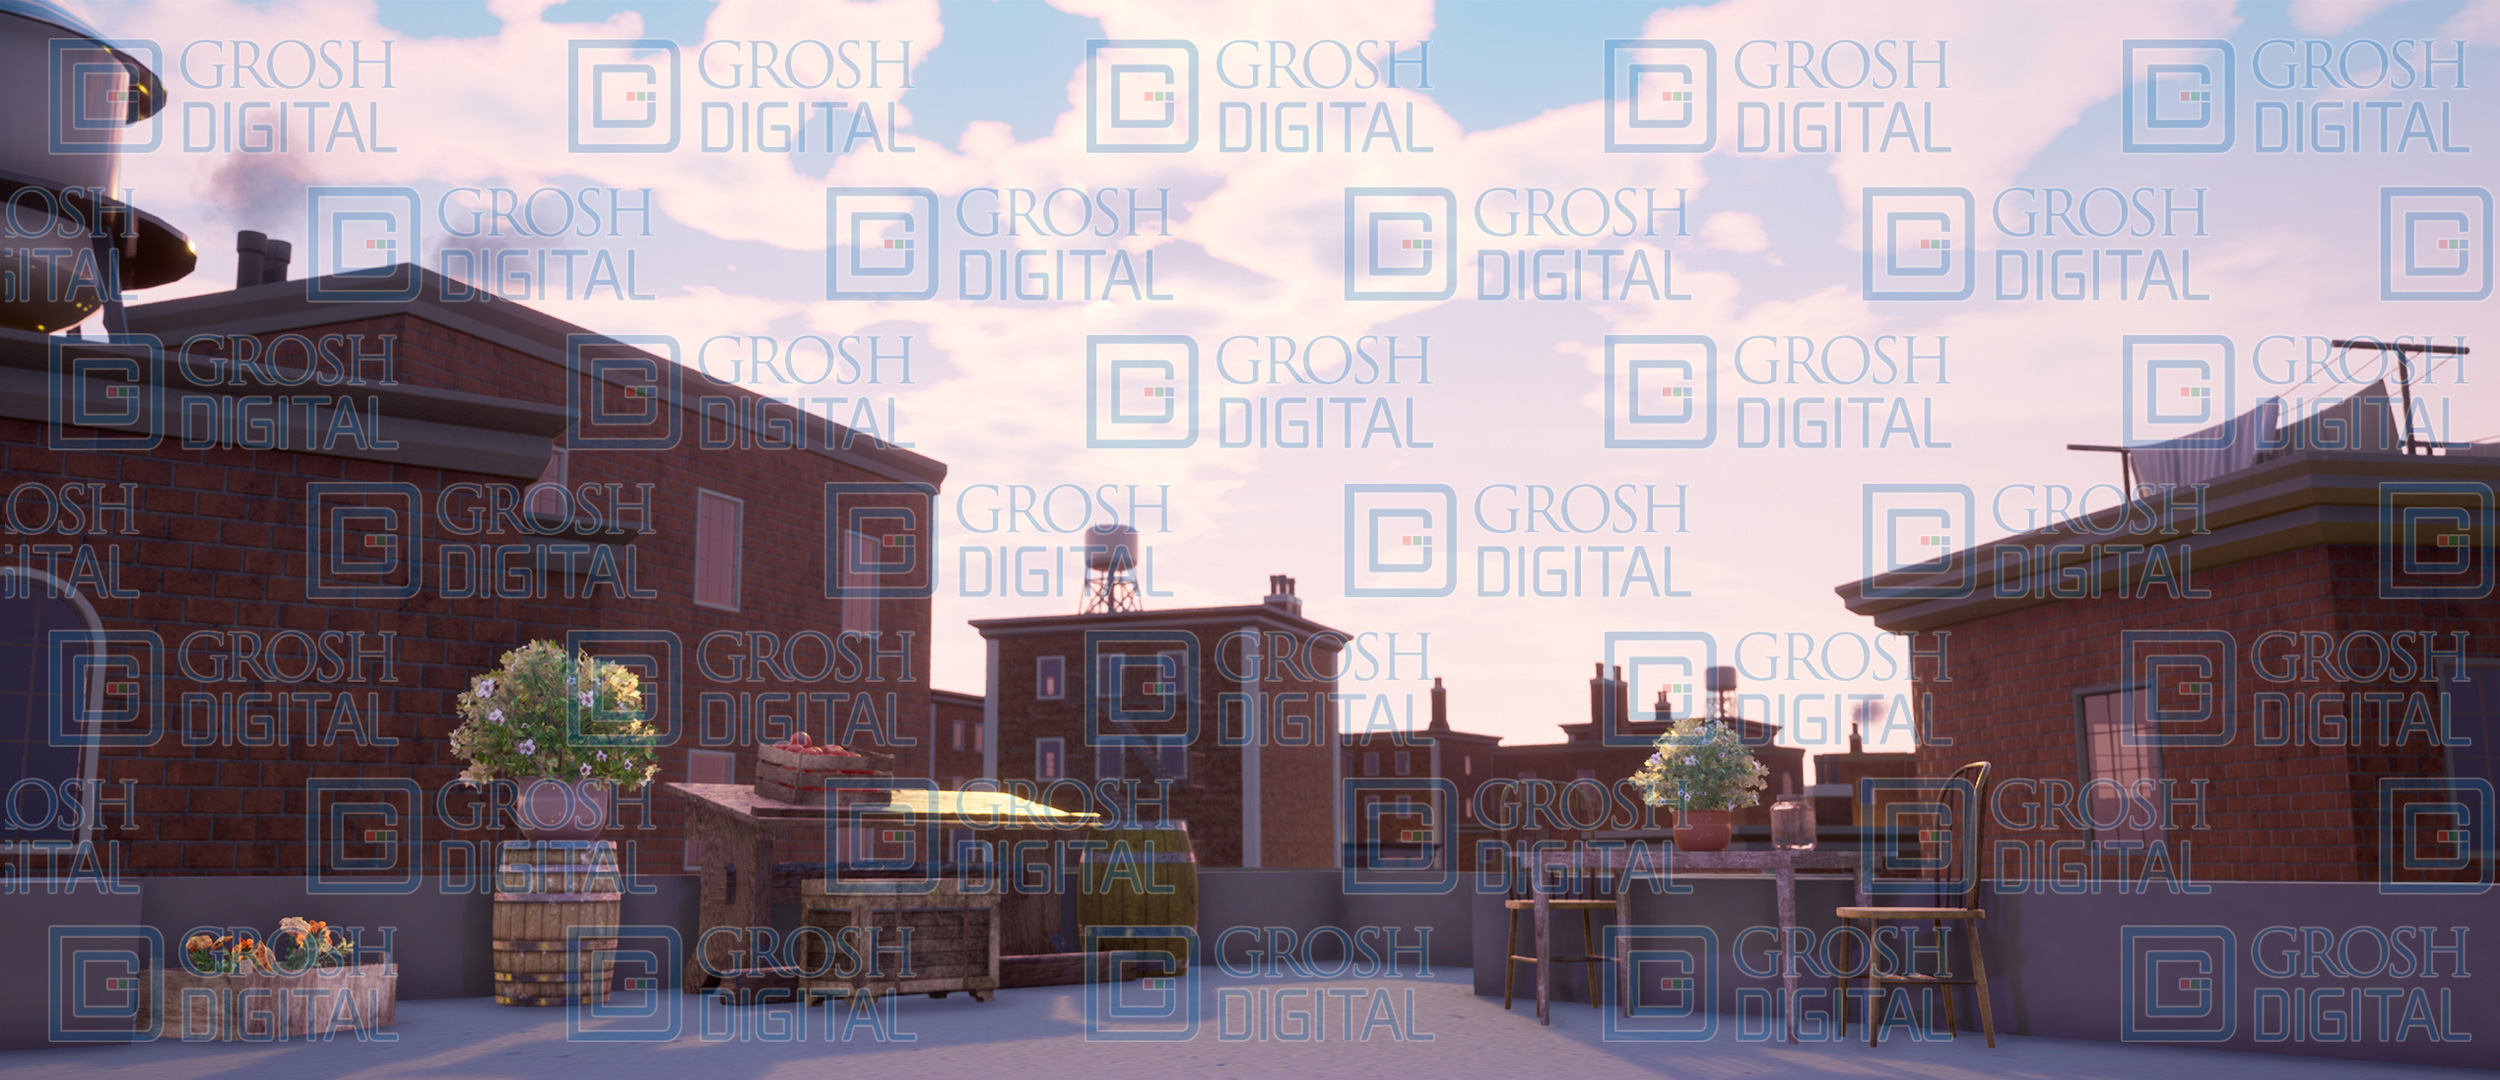 Daytime New York City Rooftops Projected Backdrop for Exteriors, Newsies, Skylines